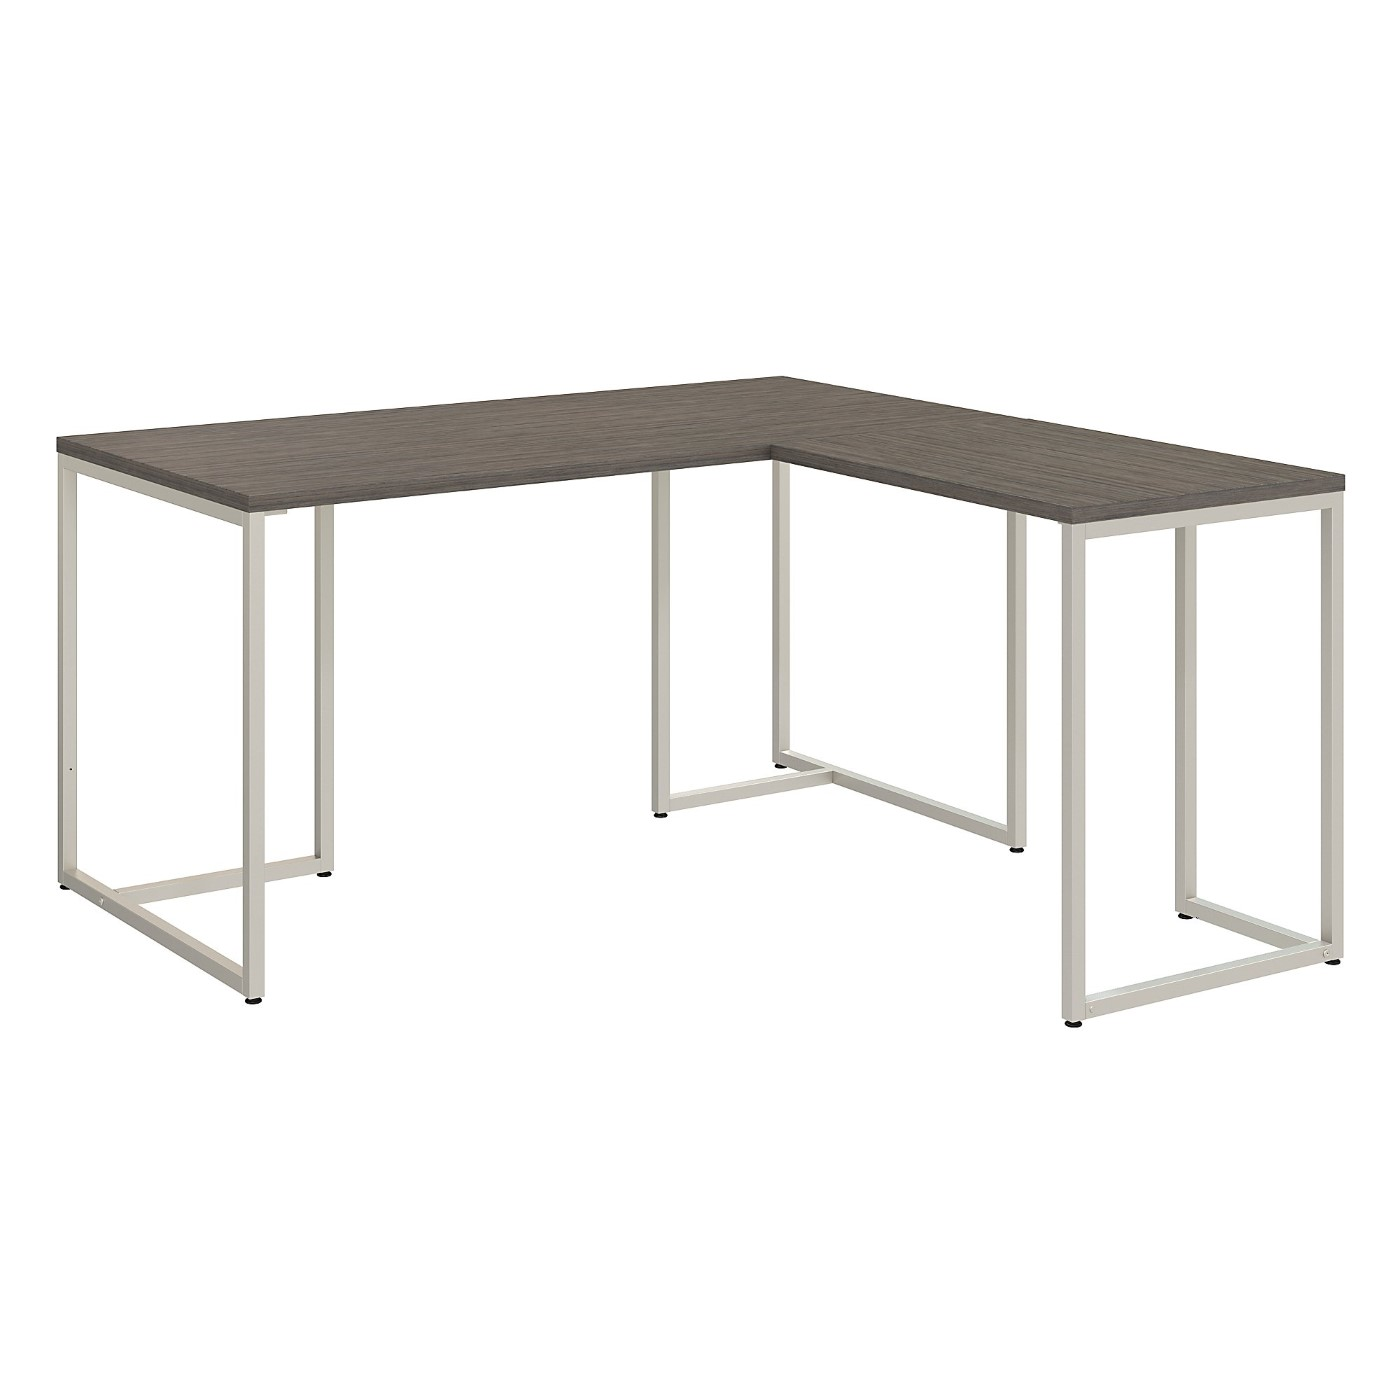 OFFICE BY KATHY IRELAND� METHOD 60W L SHAPED DESK WITH 30W RETURN. FREE SHIPPING